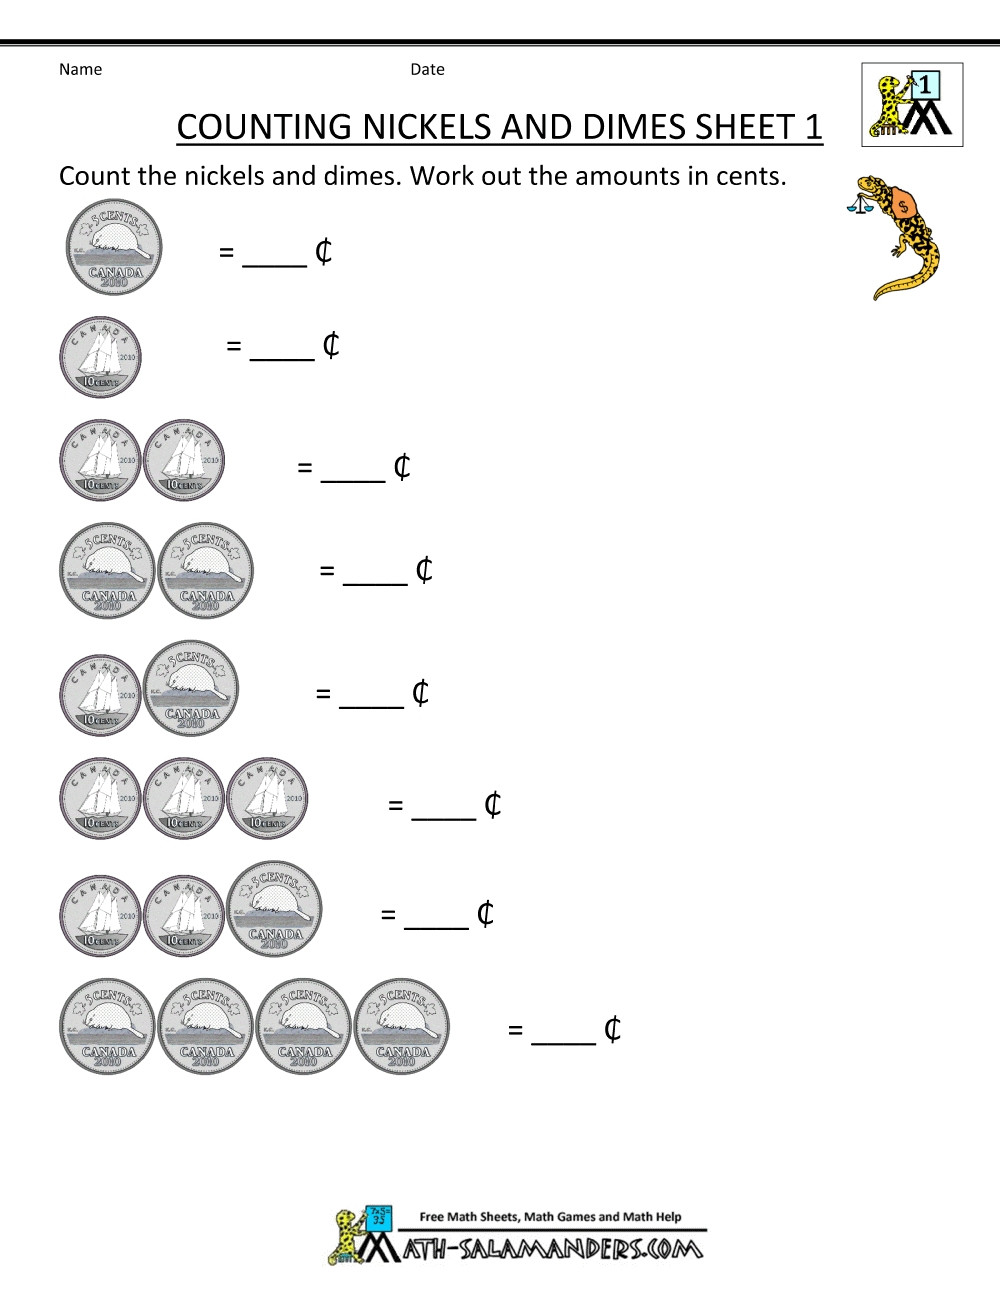 Word Problems Worksheets 1st Grade Adding and Subtracting Fractions Year 7 Grammar Worksheets